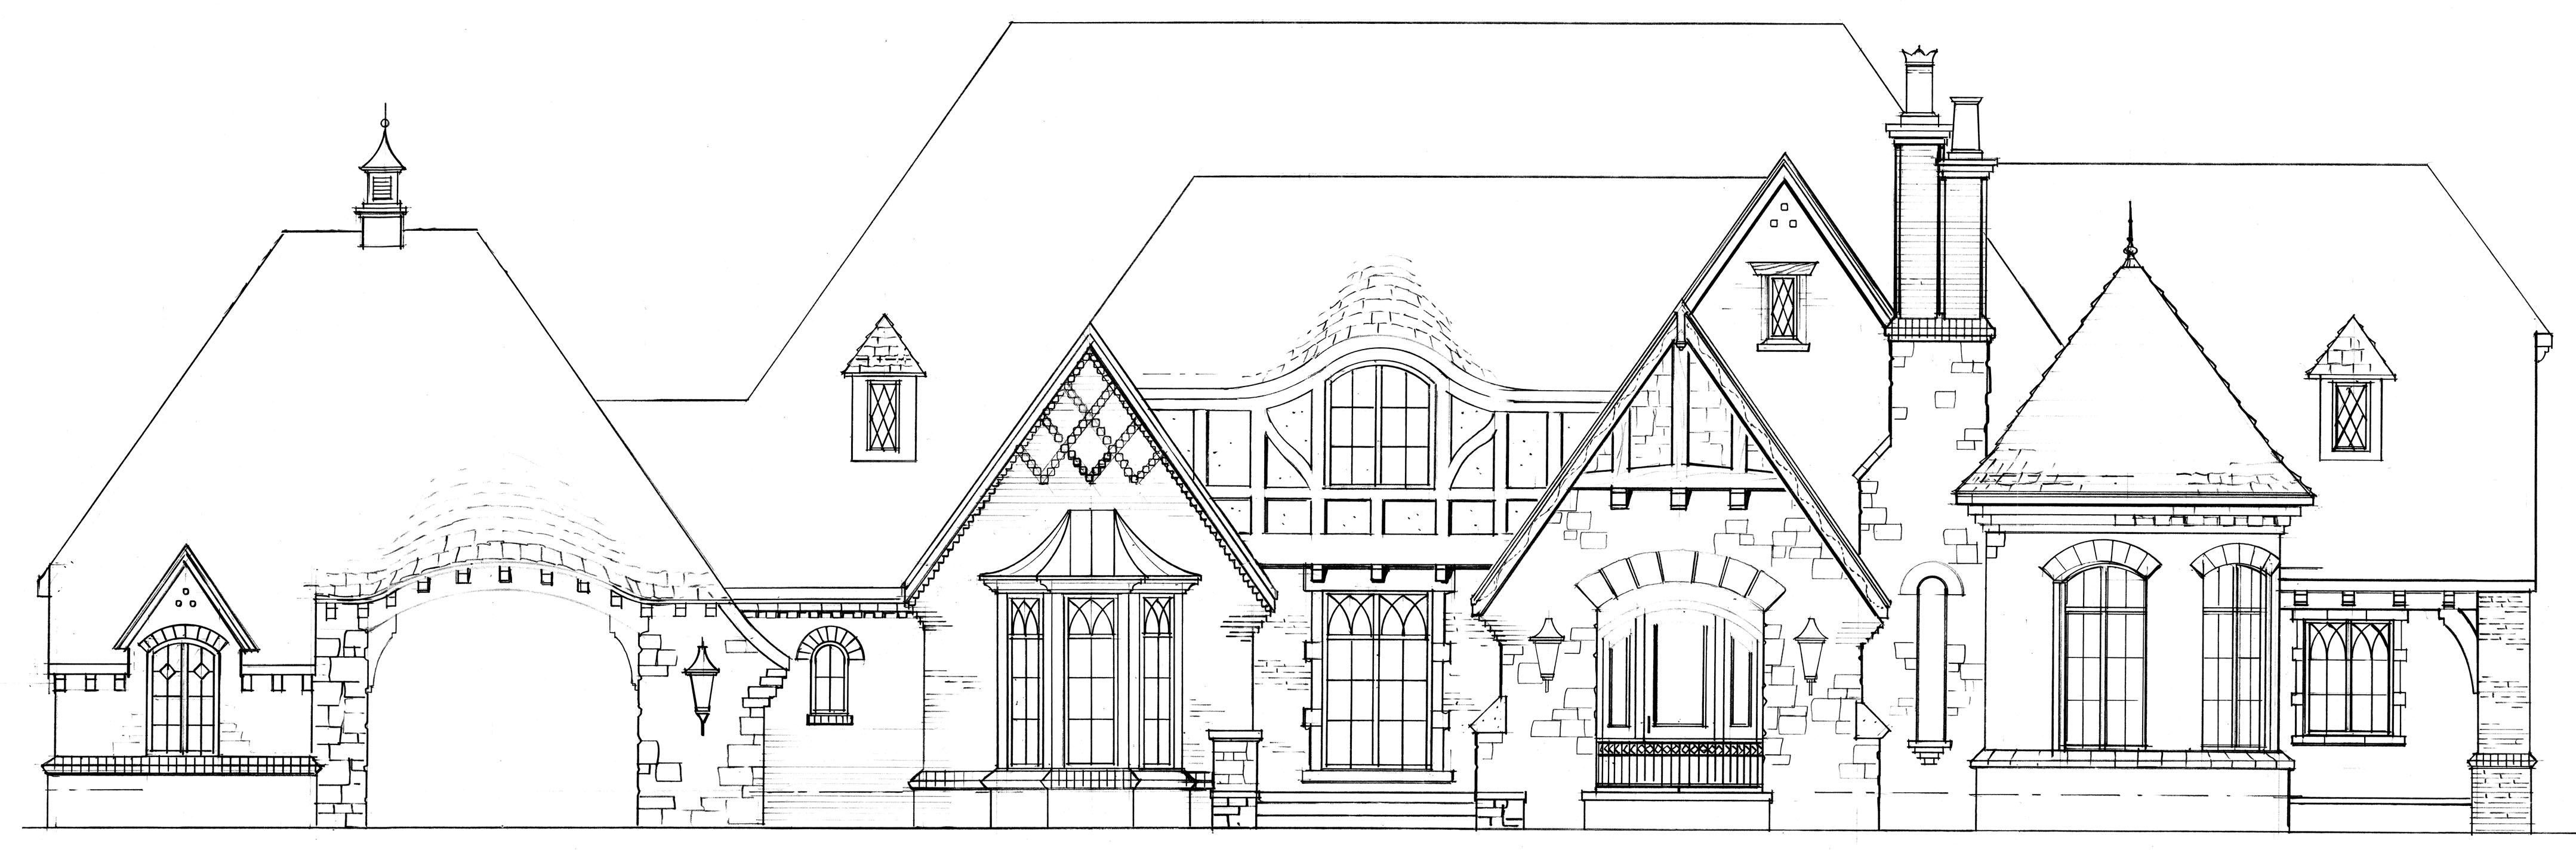 1 Front Elevation 300 dpi 50 persent